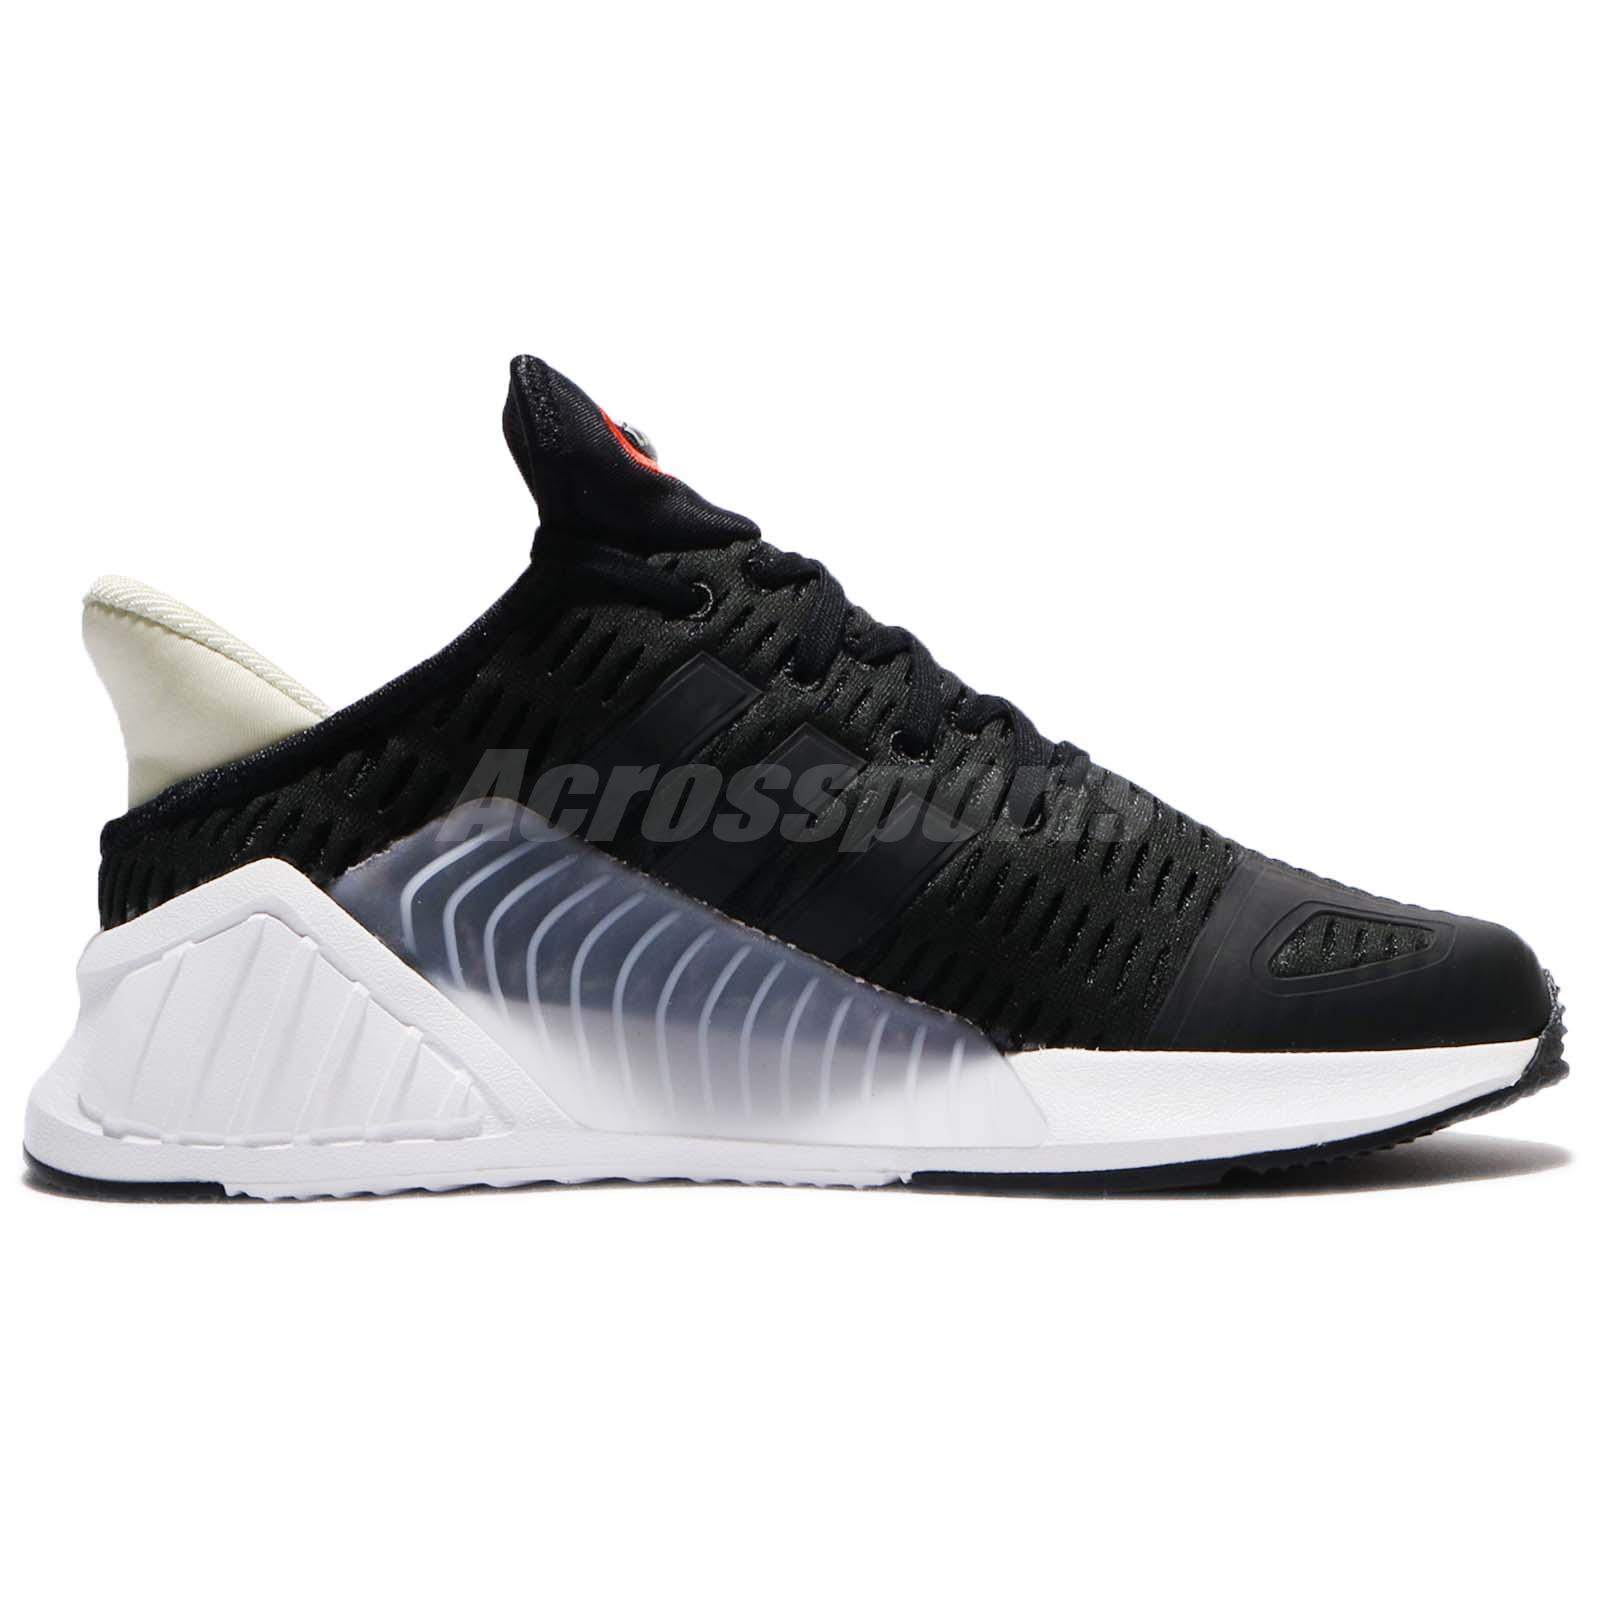 the best attitude 2e130 80b4c Details about adidas Originals ClimaCool 02/17 W Black White Women Running  Shoe Sneaker BY9290